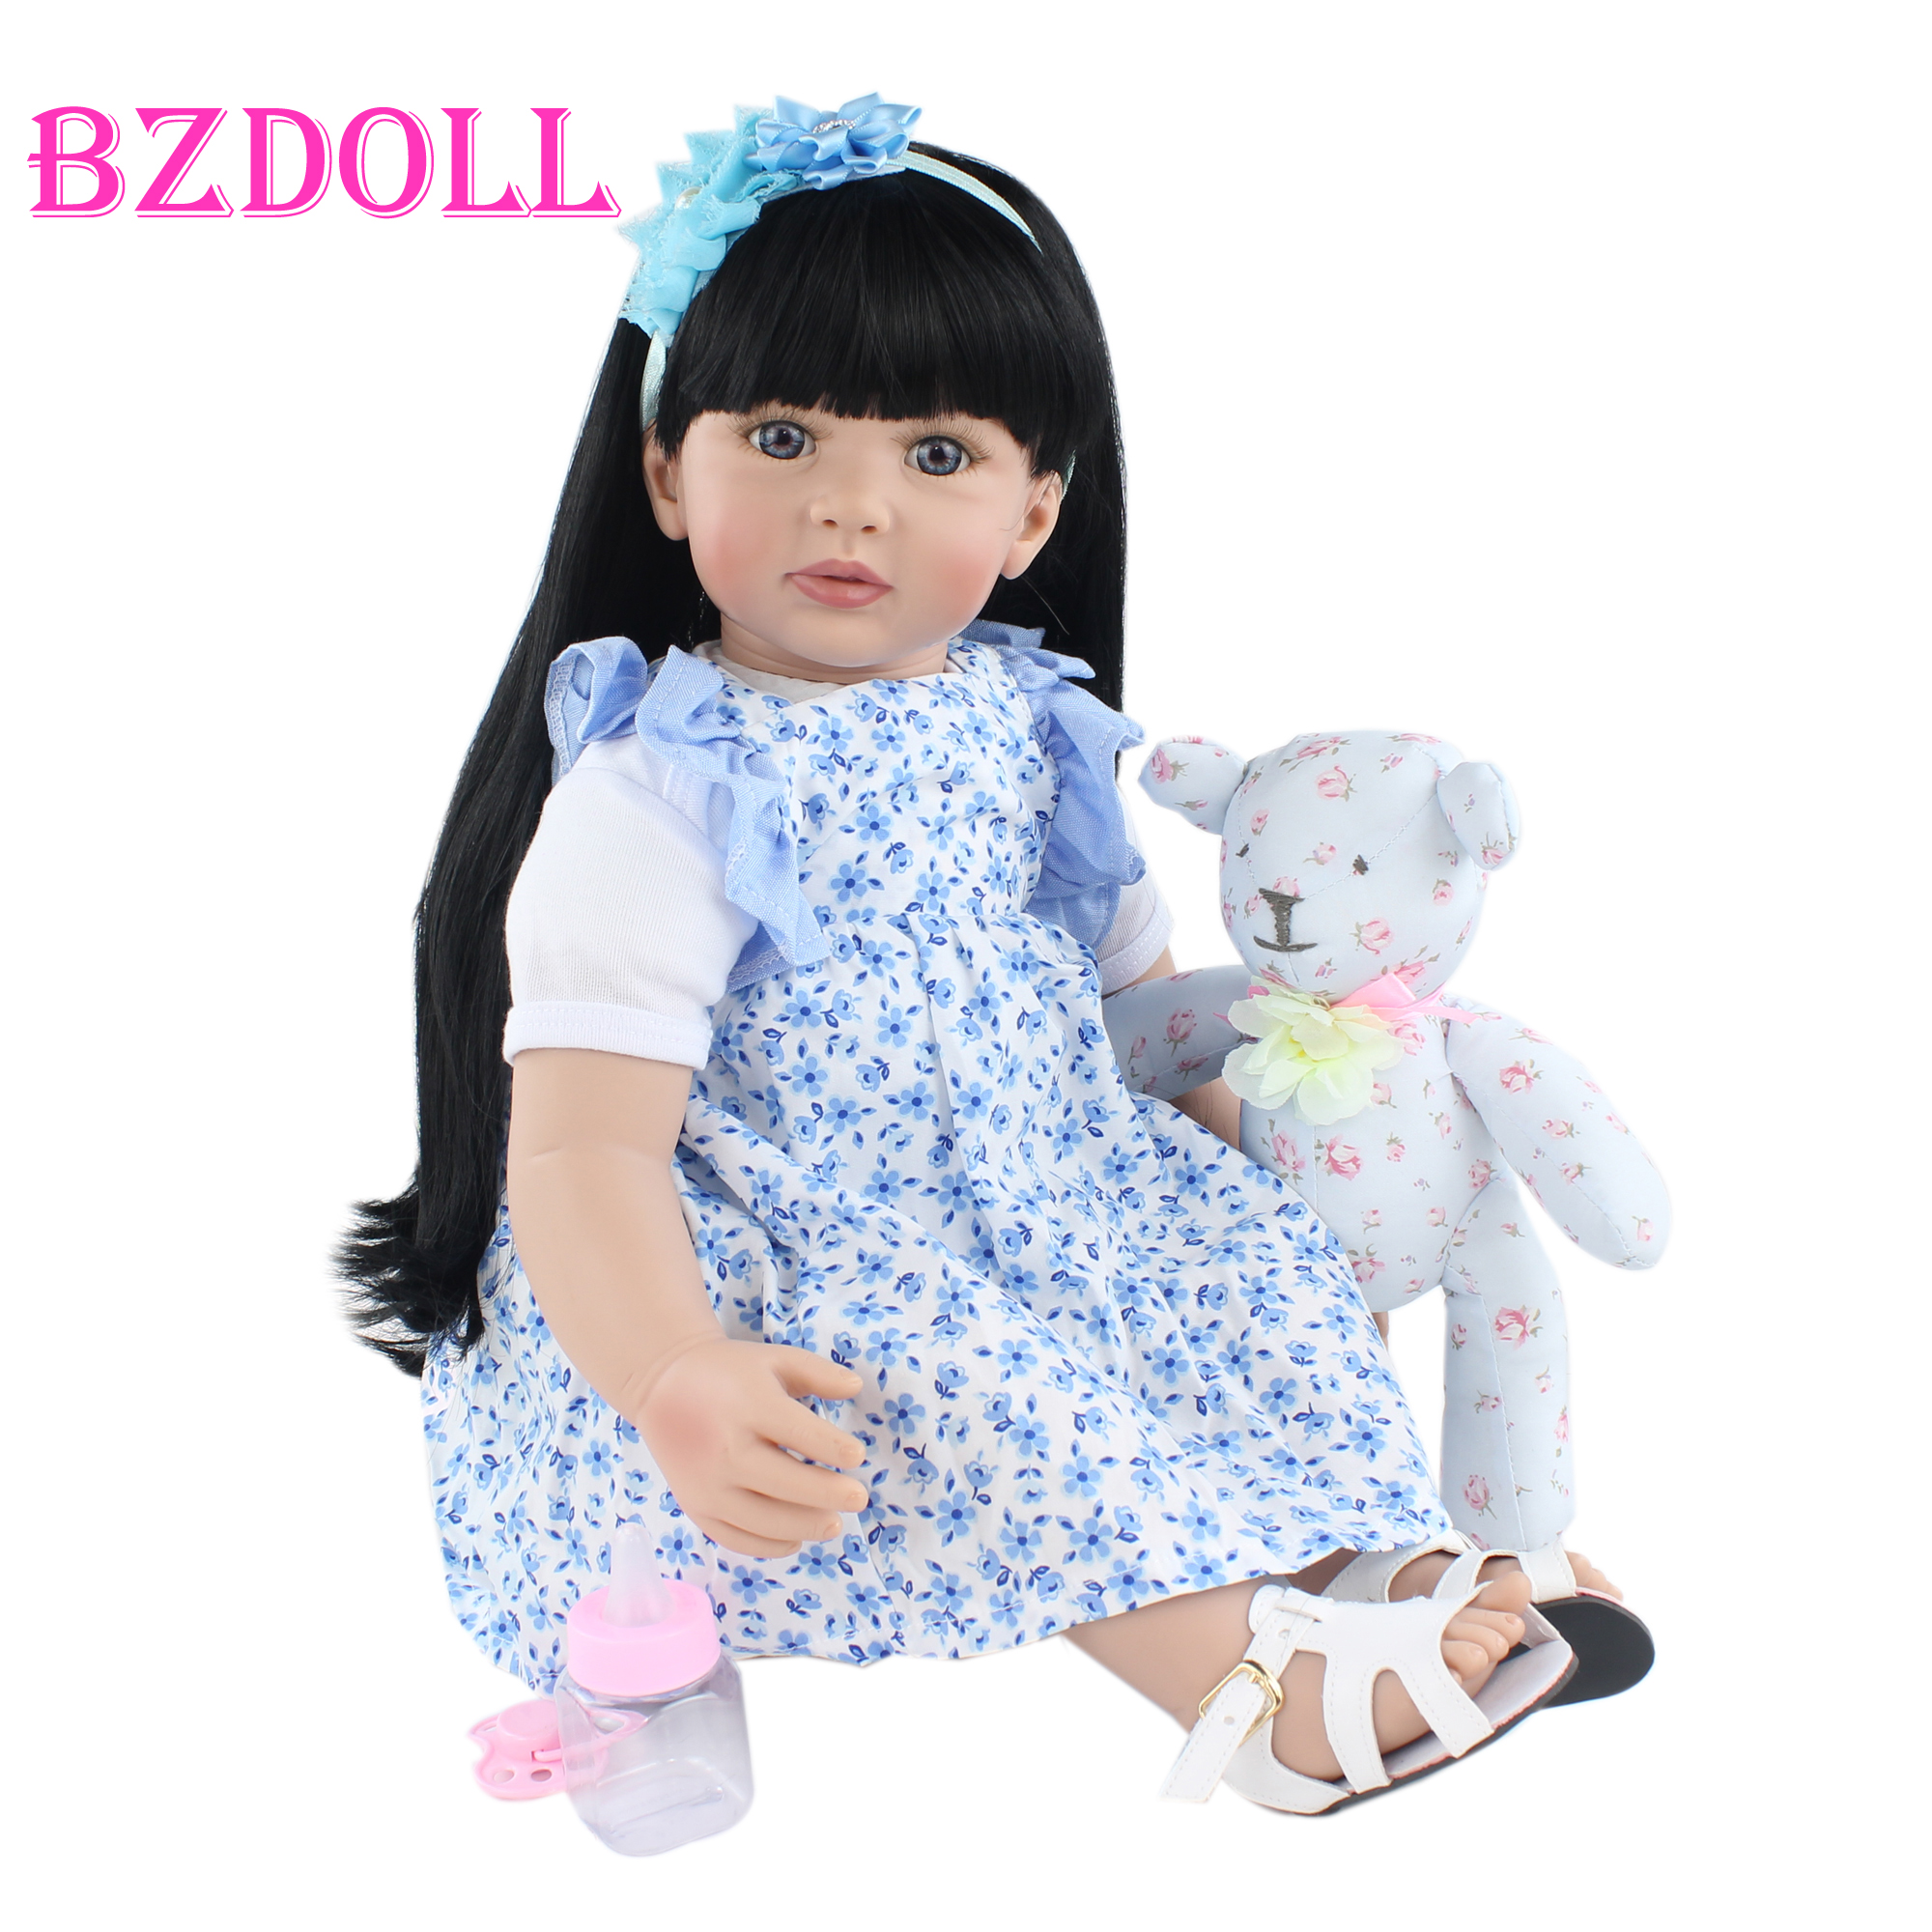 60cm Soft Silicone Reborn Toddler Doll Toys For Girl Cloth Body Black Long Hair Princess Baby Kids Birthday Gift Play House